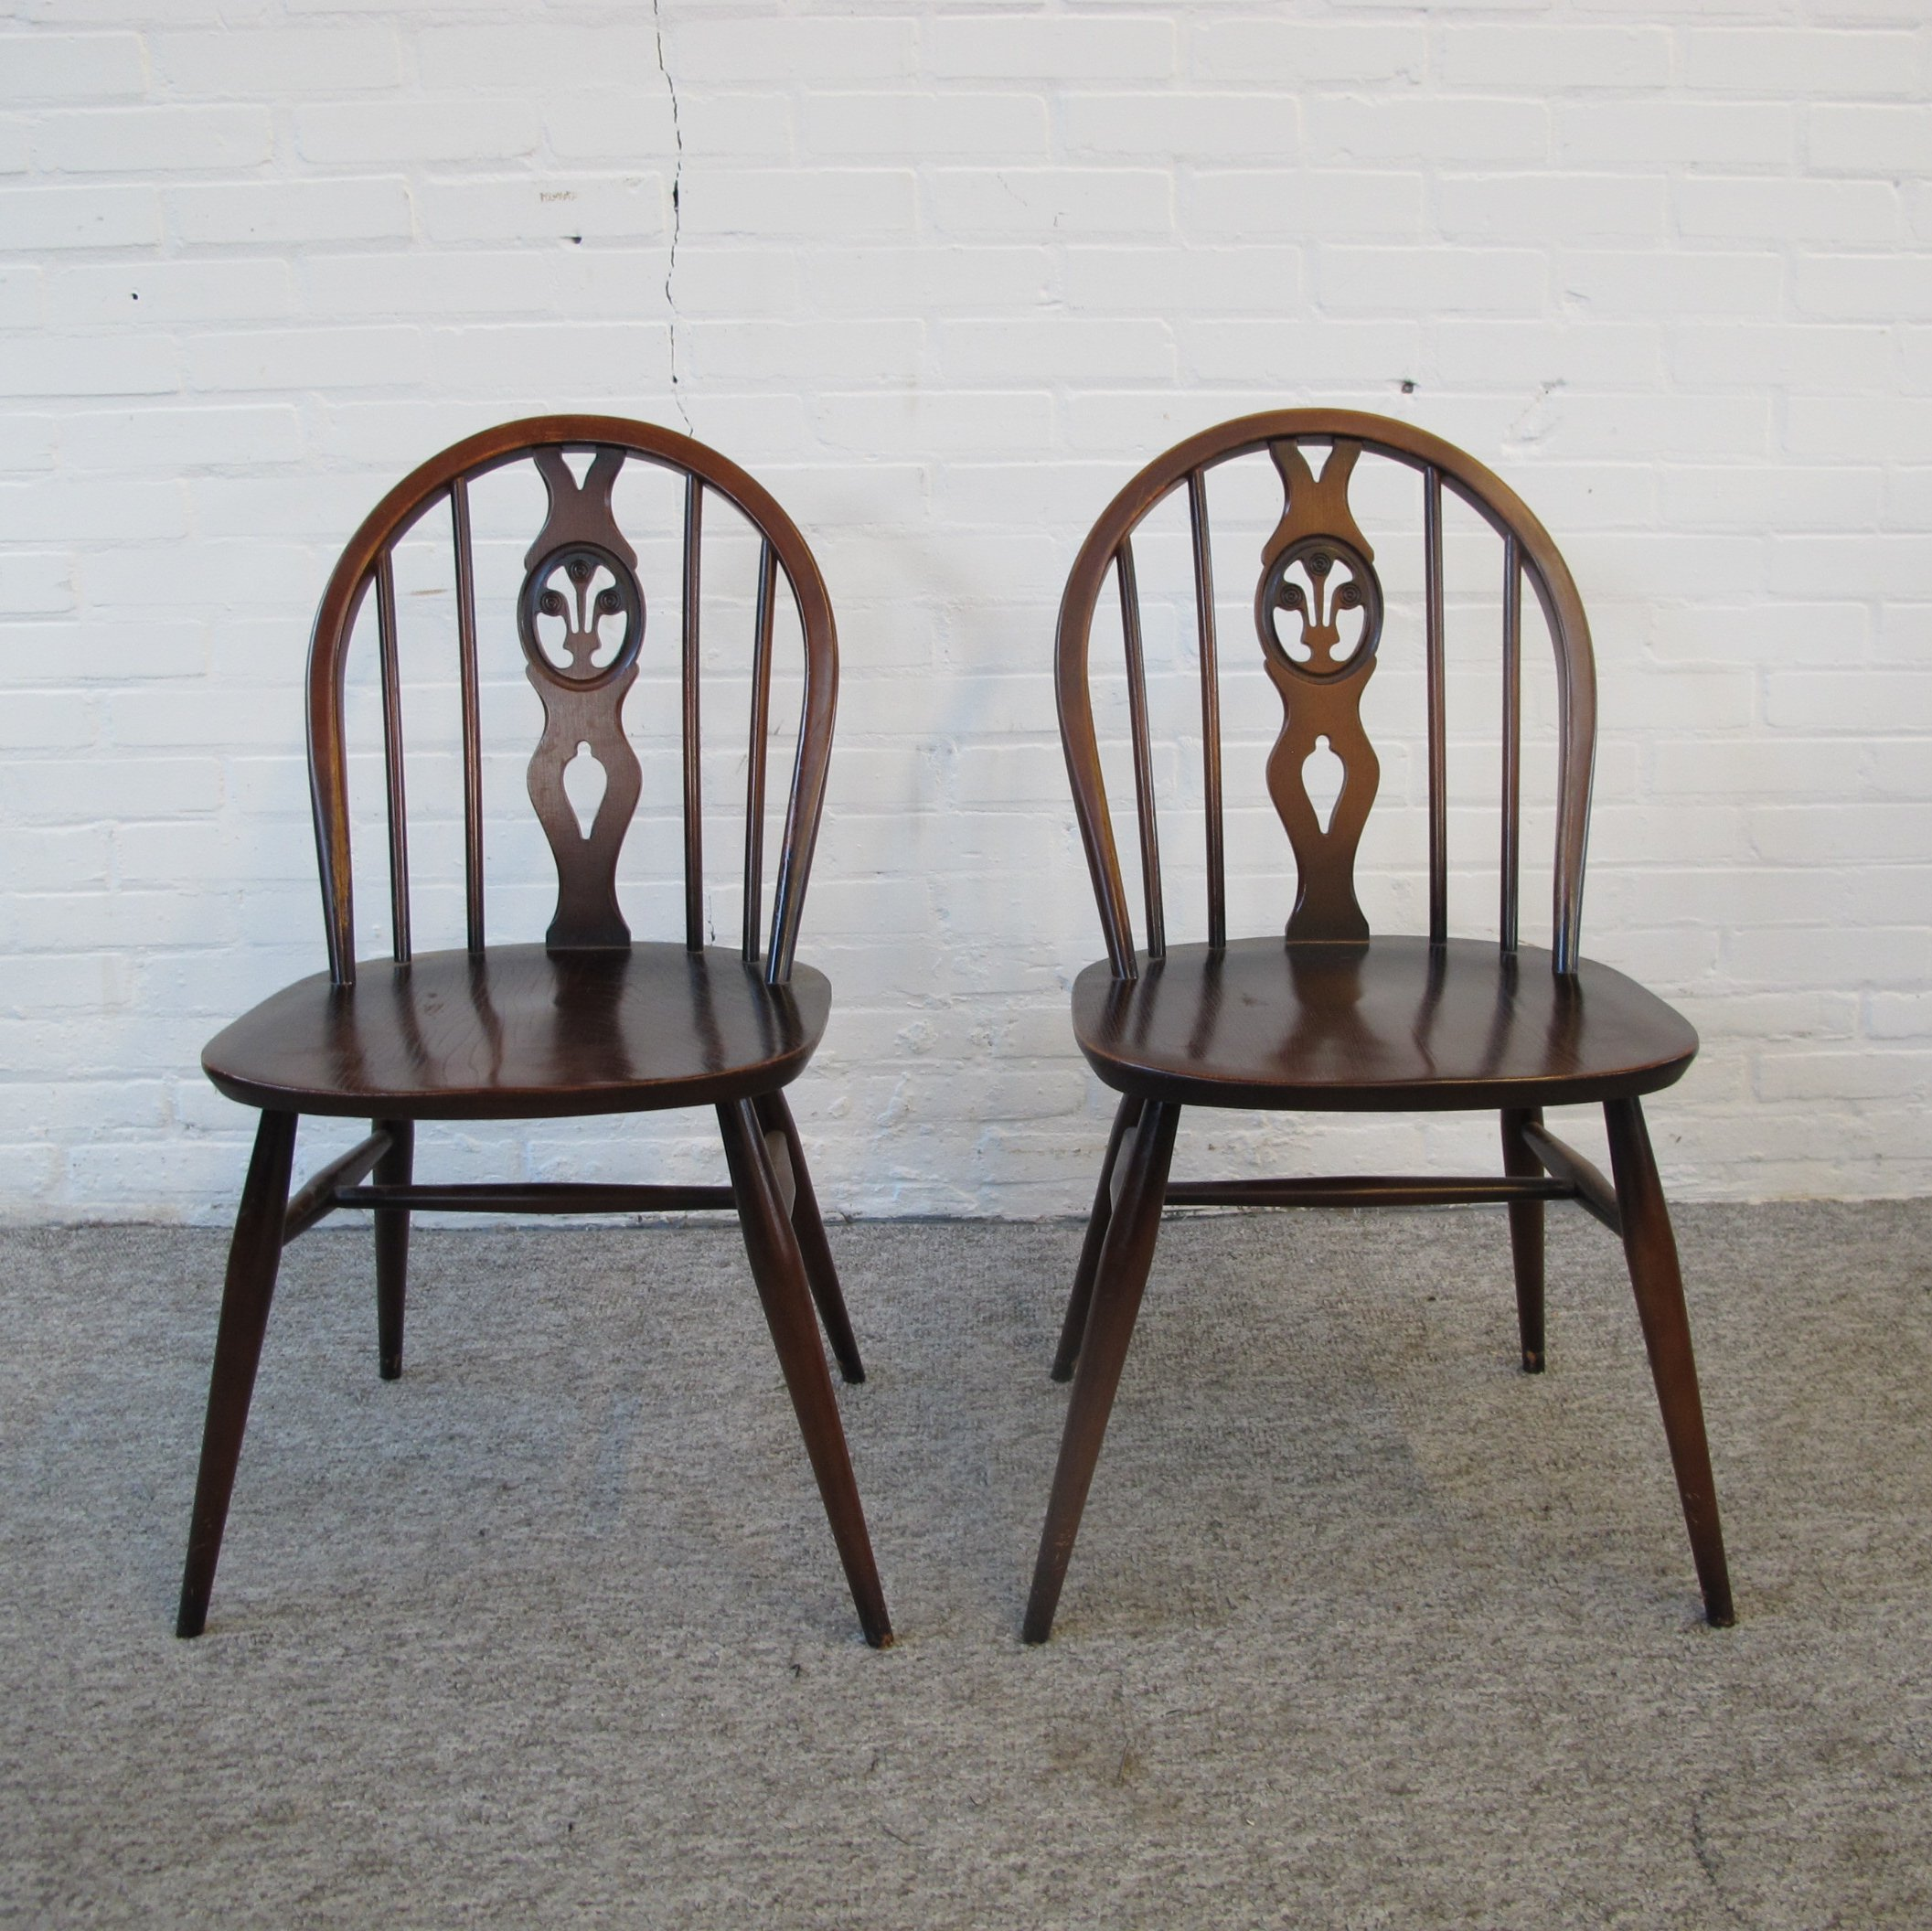 Pair of Ercol Lucian Ercolani dining chairs, 1960s | #116815